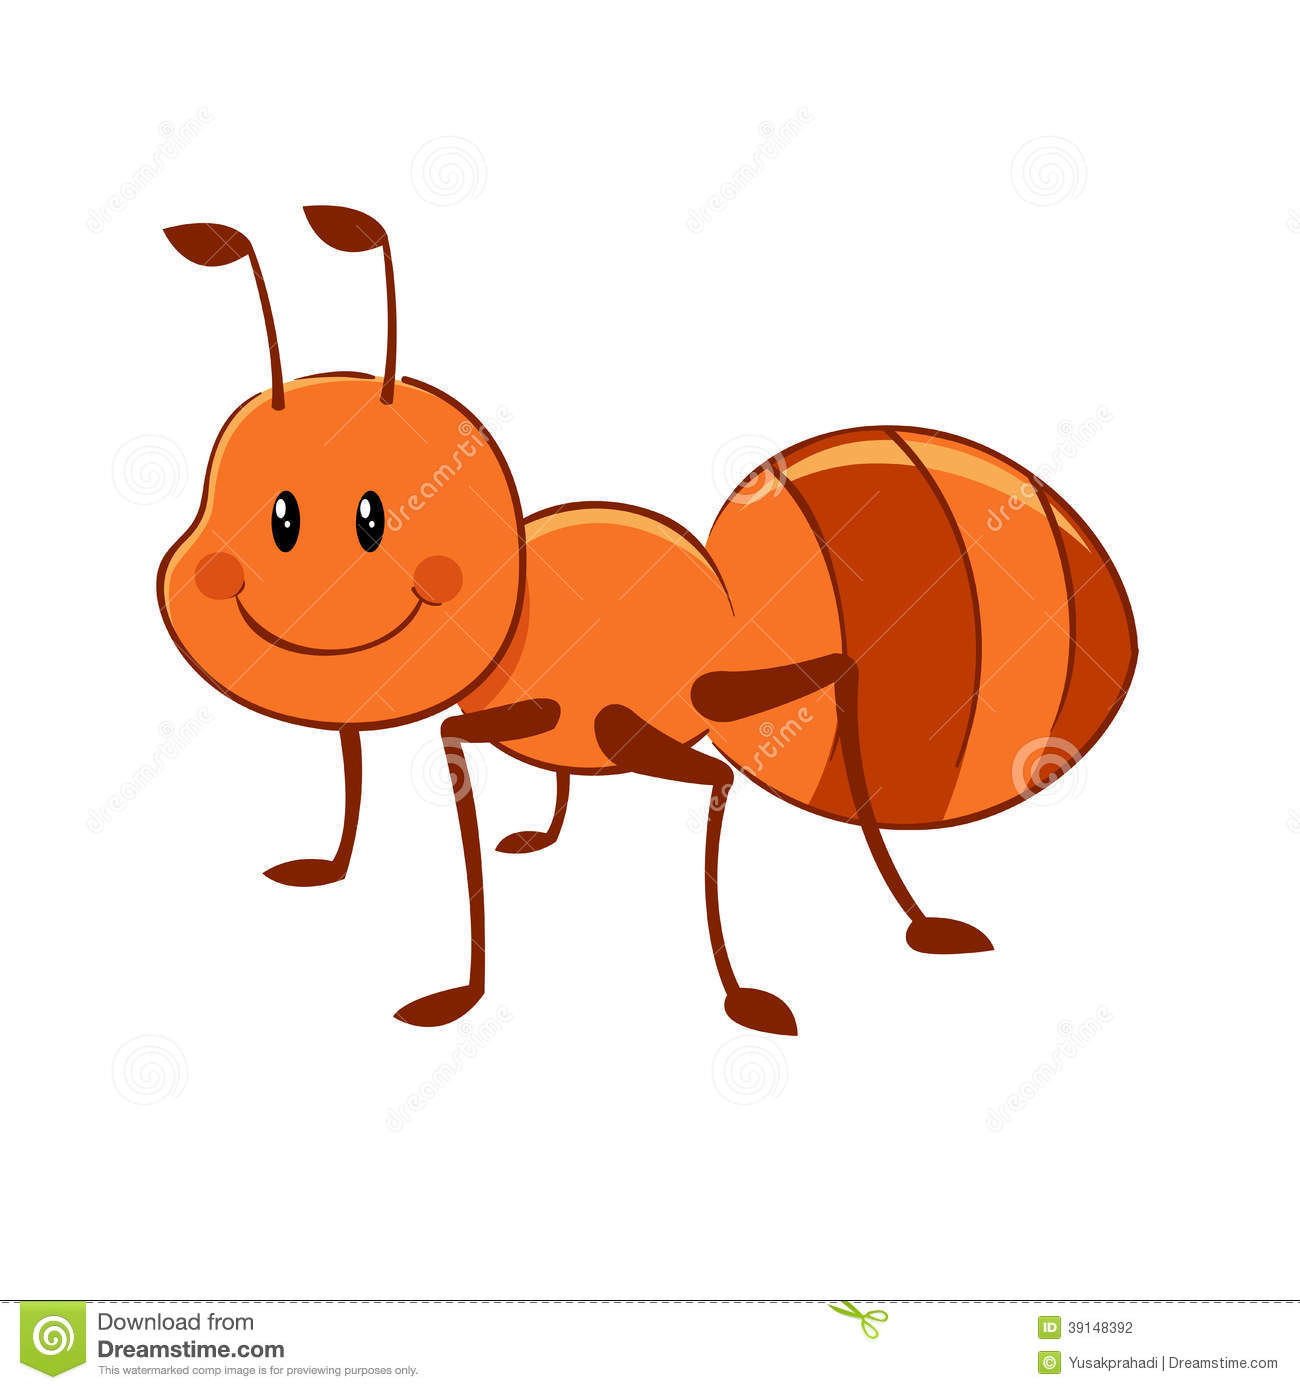 Ant clipart #11, Download drawings